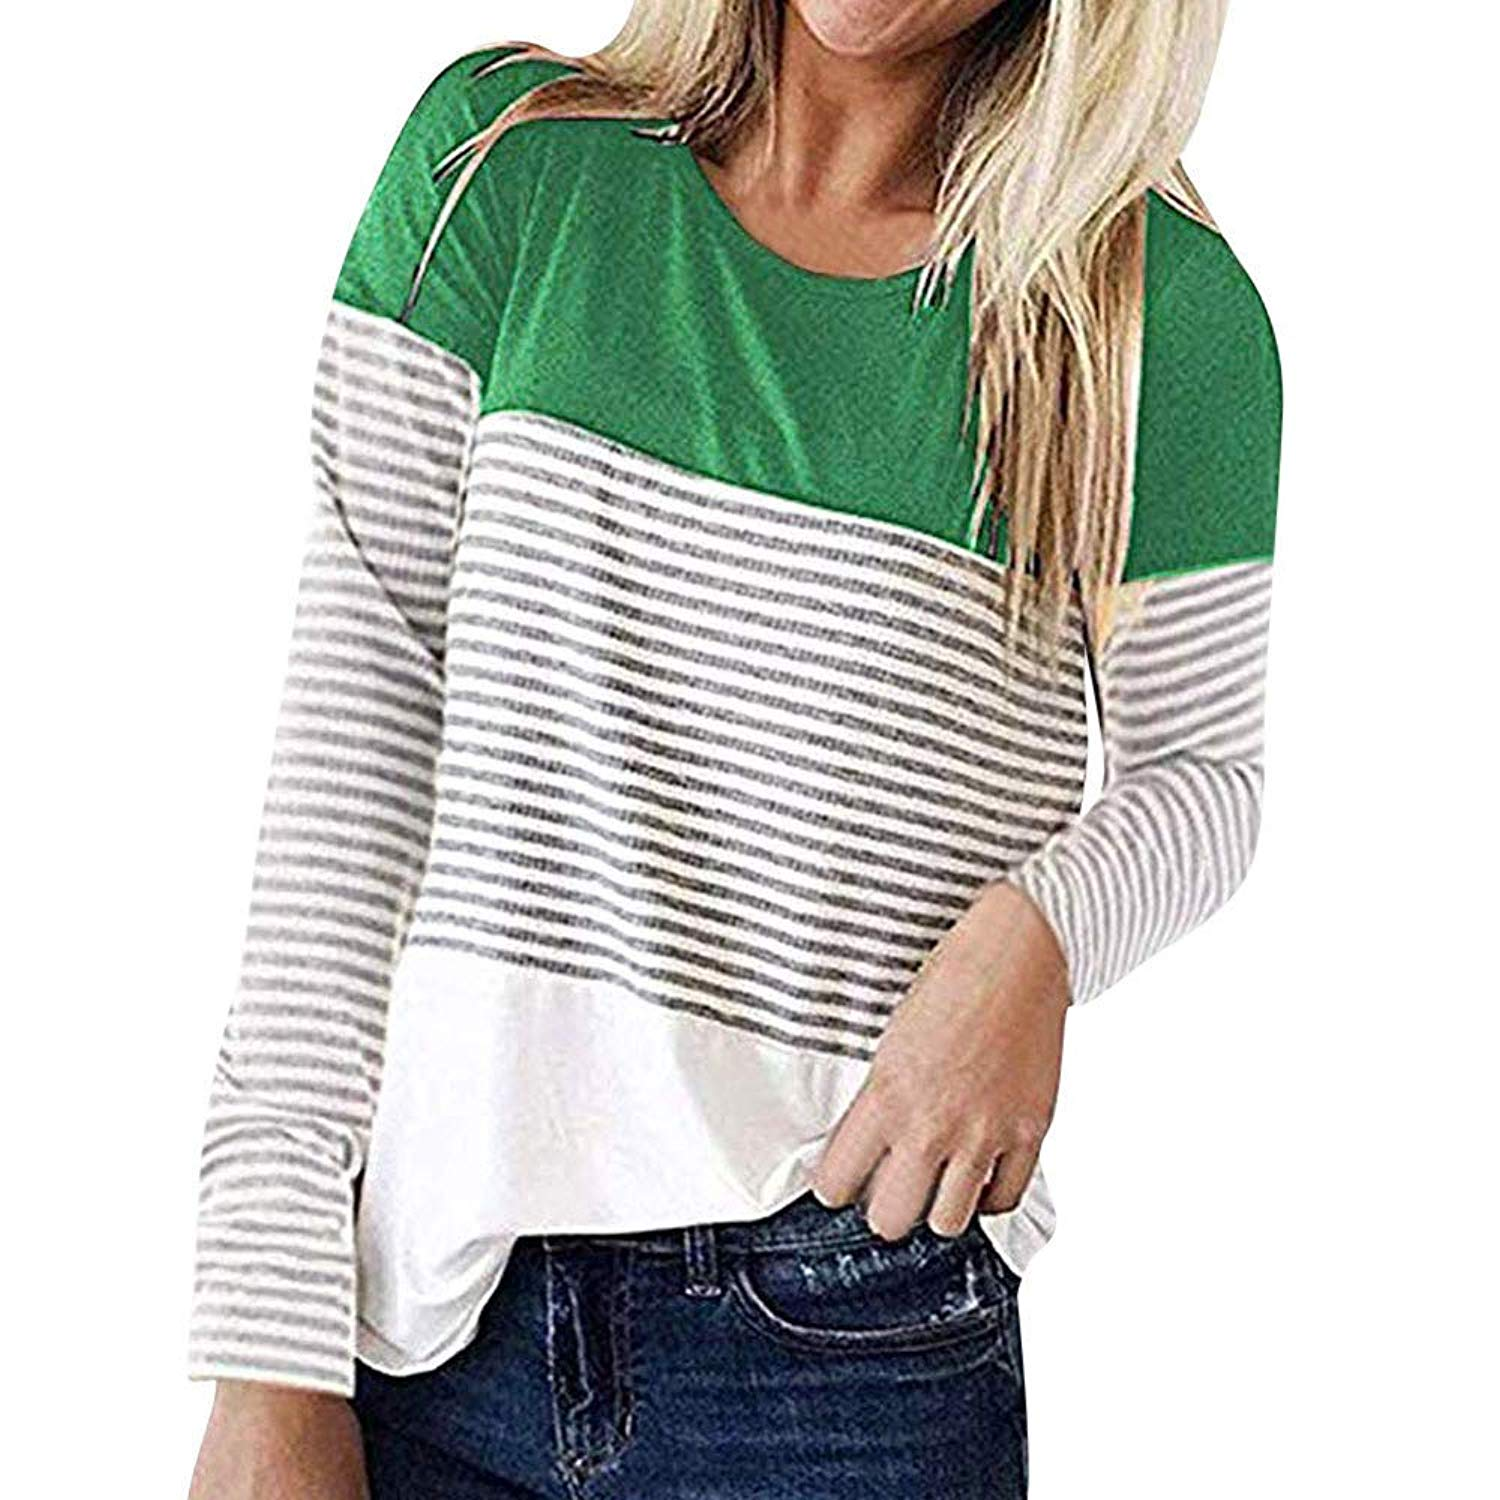 Women's Comfy Round Neck Triple Color Block Stripe T-Shirt Long Sleeve Casual Blouse Tops Tunic